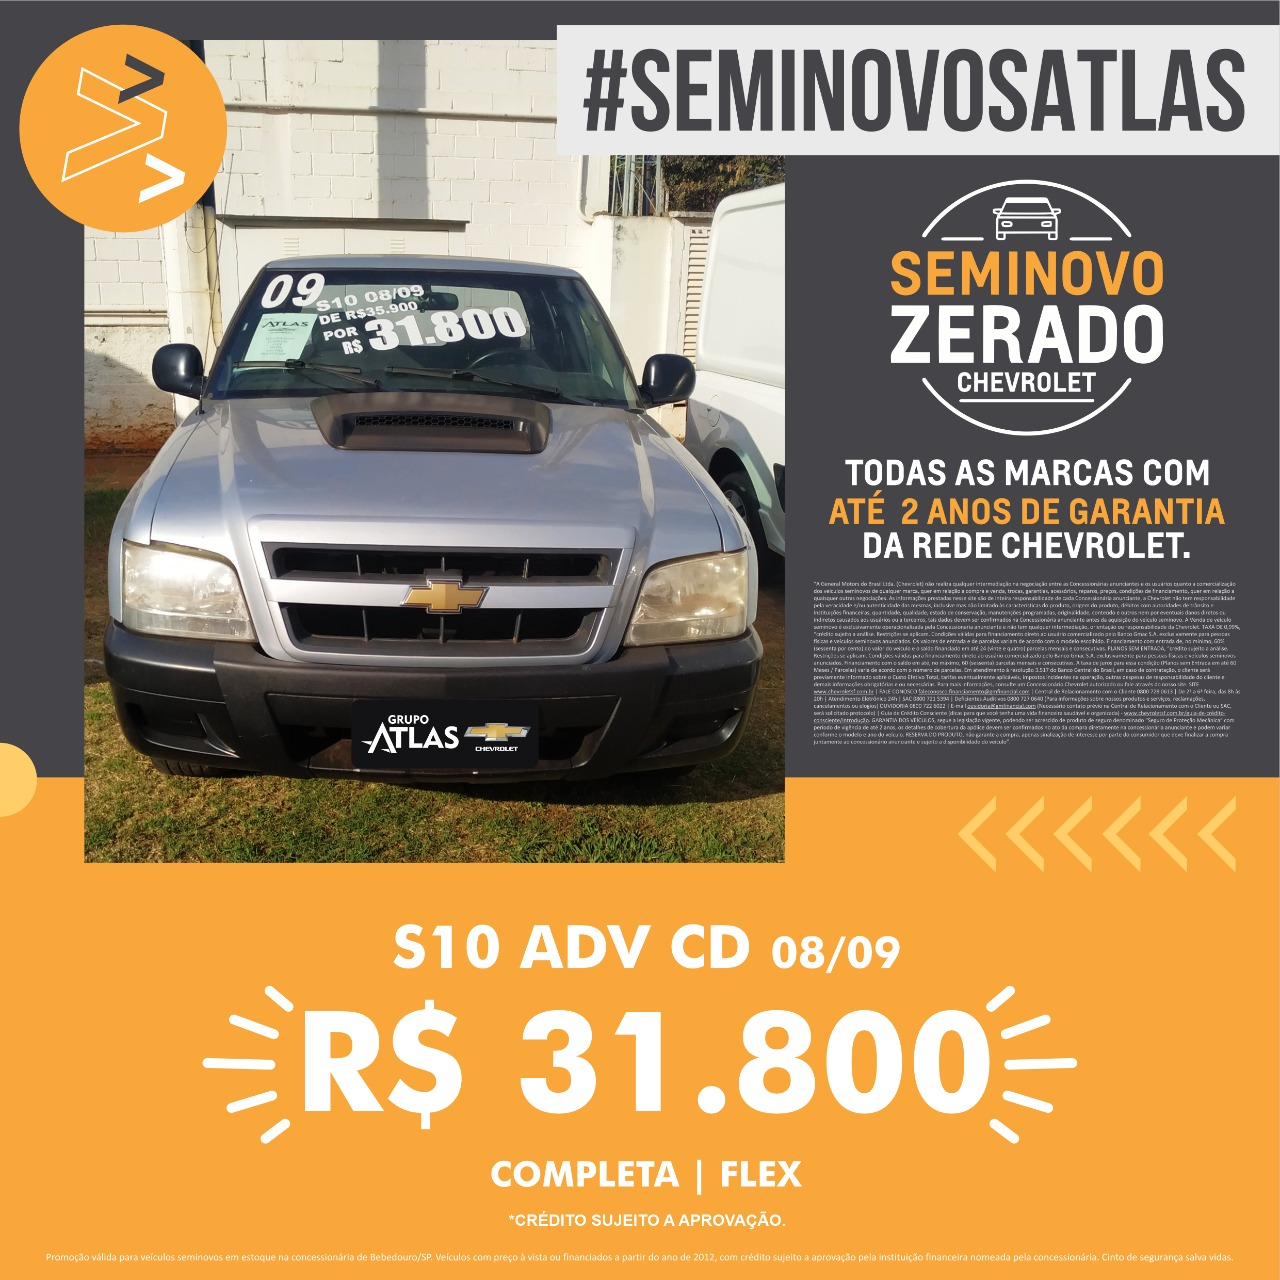 CHEVROLET S10 ADVANTAGE 2.2 2009